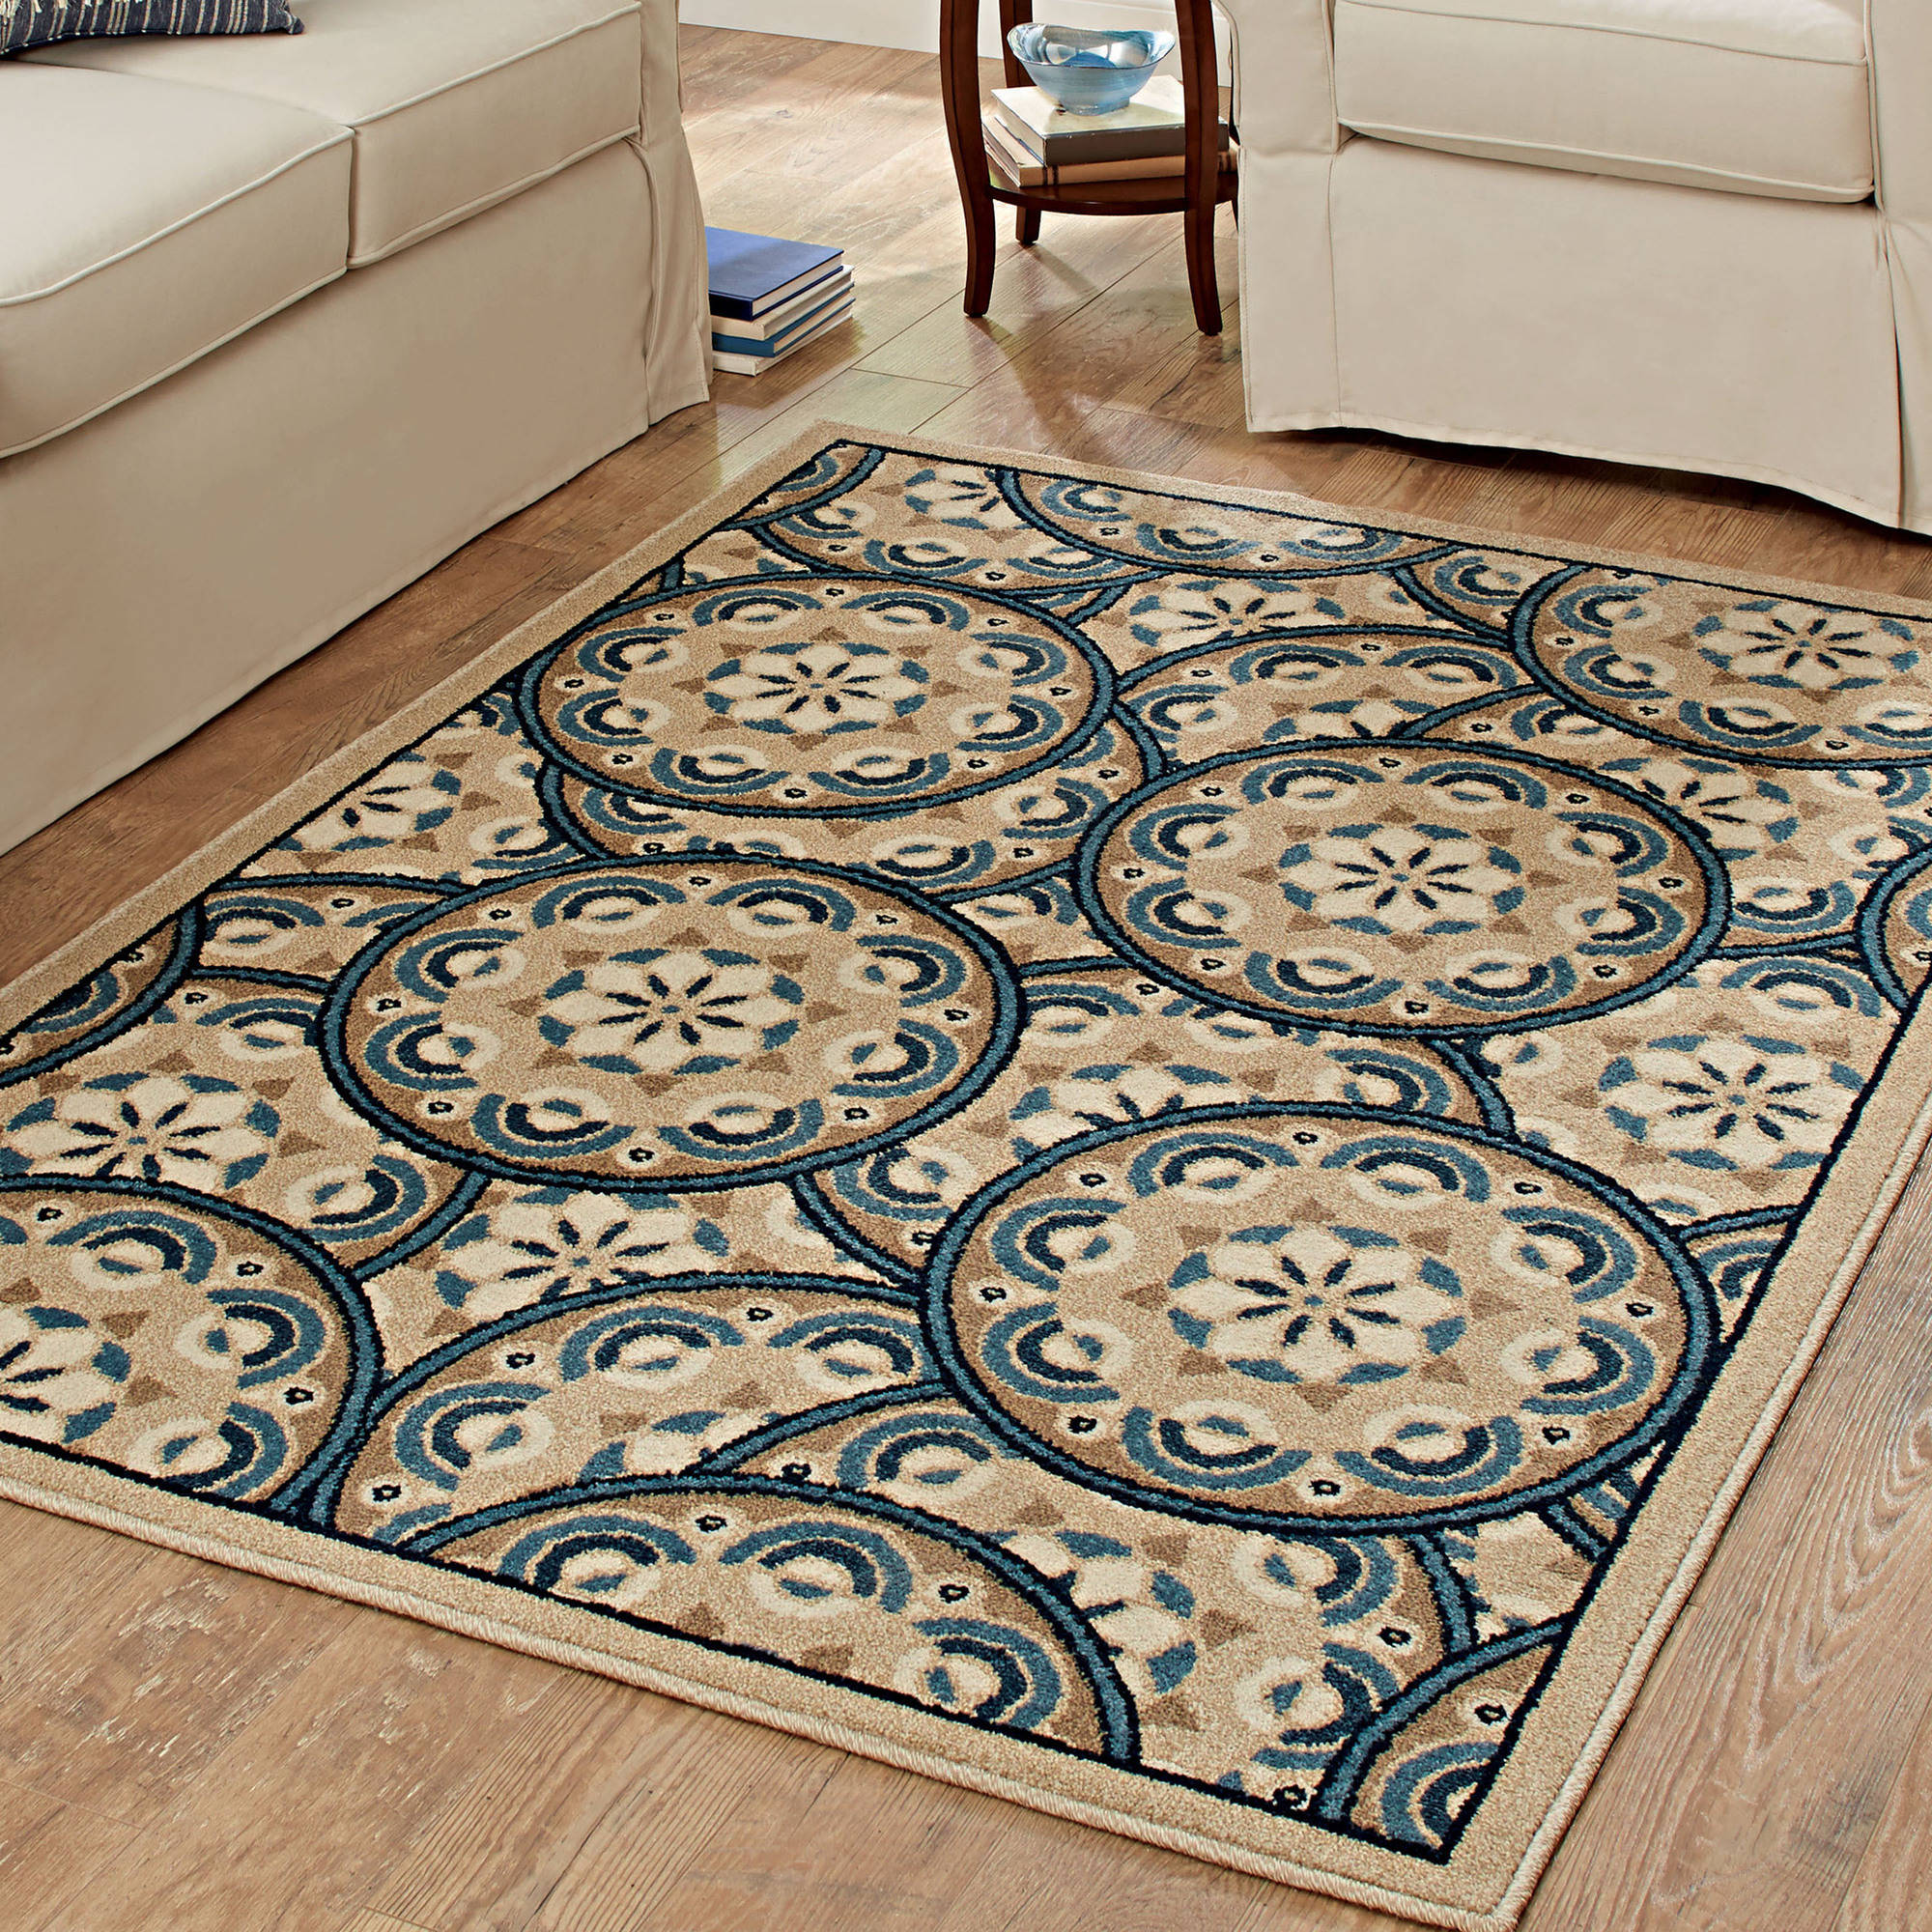 Better Homes and Gardens Blue Tokens Area Rug and Runner